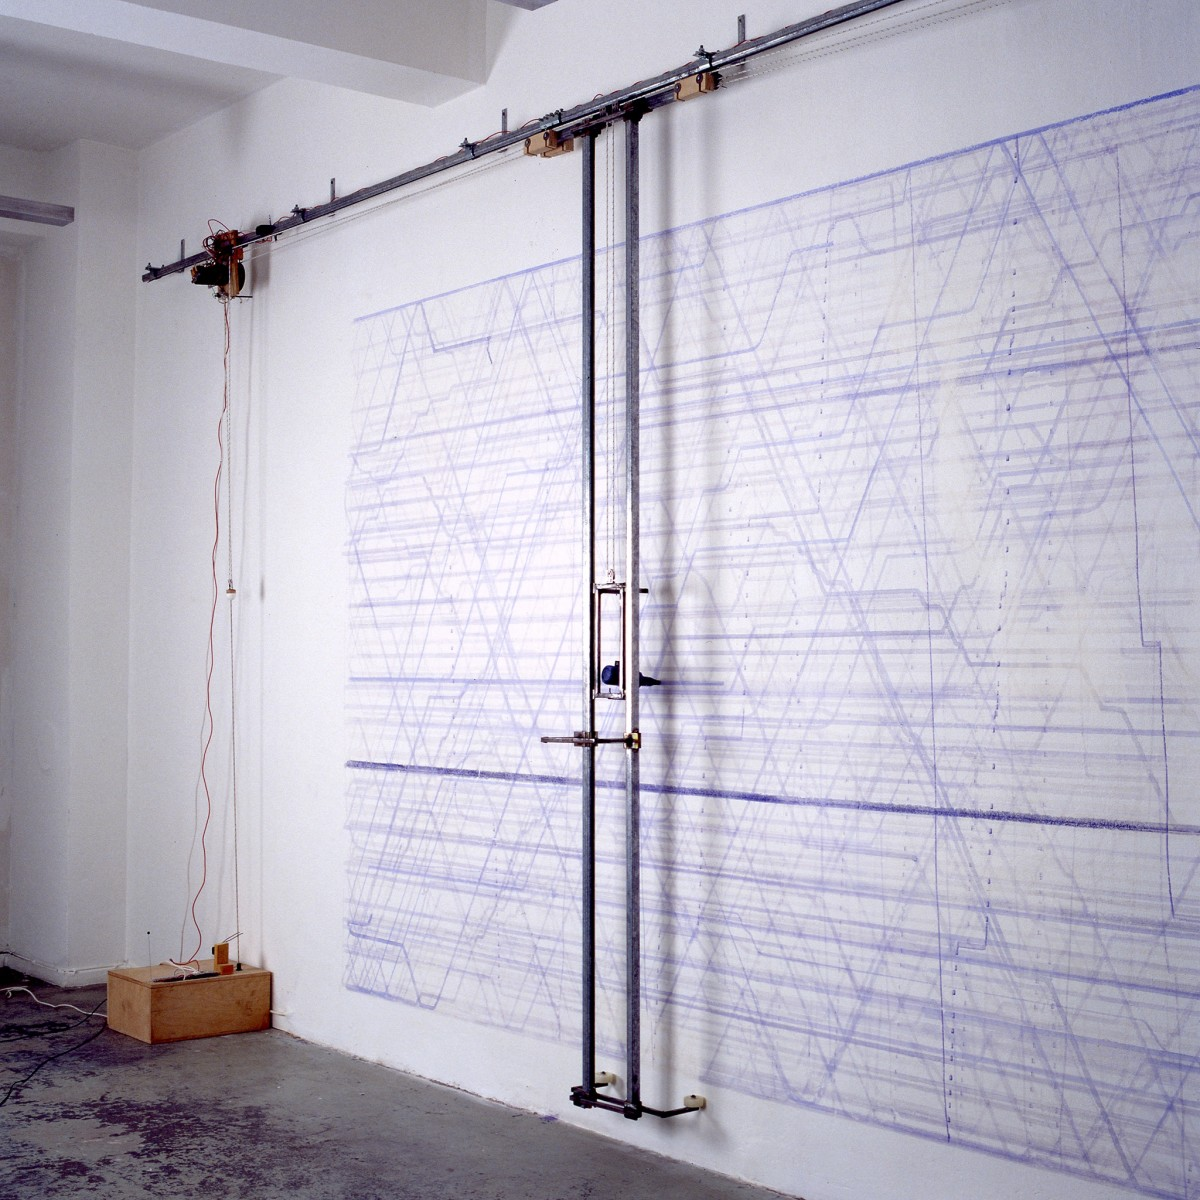 Angela Bulloch, Blue Horizons II, 1990, drawing machine, infra-red detectors, ink (blue), approx. 250 x 900 cm, Private collection, Cologne. Photo © Lothar Schnepf